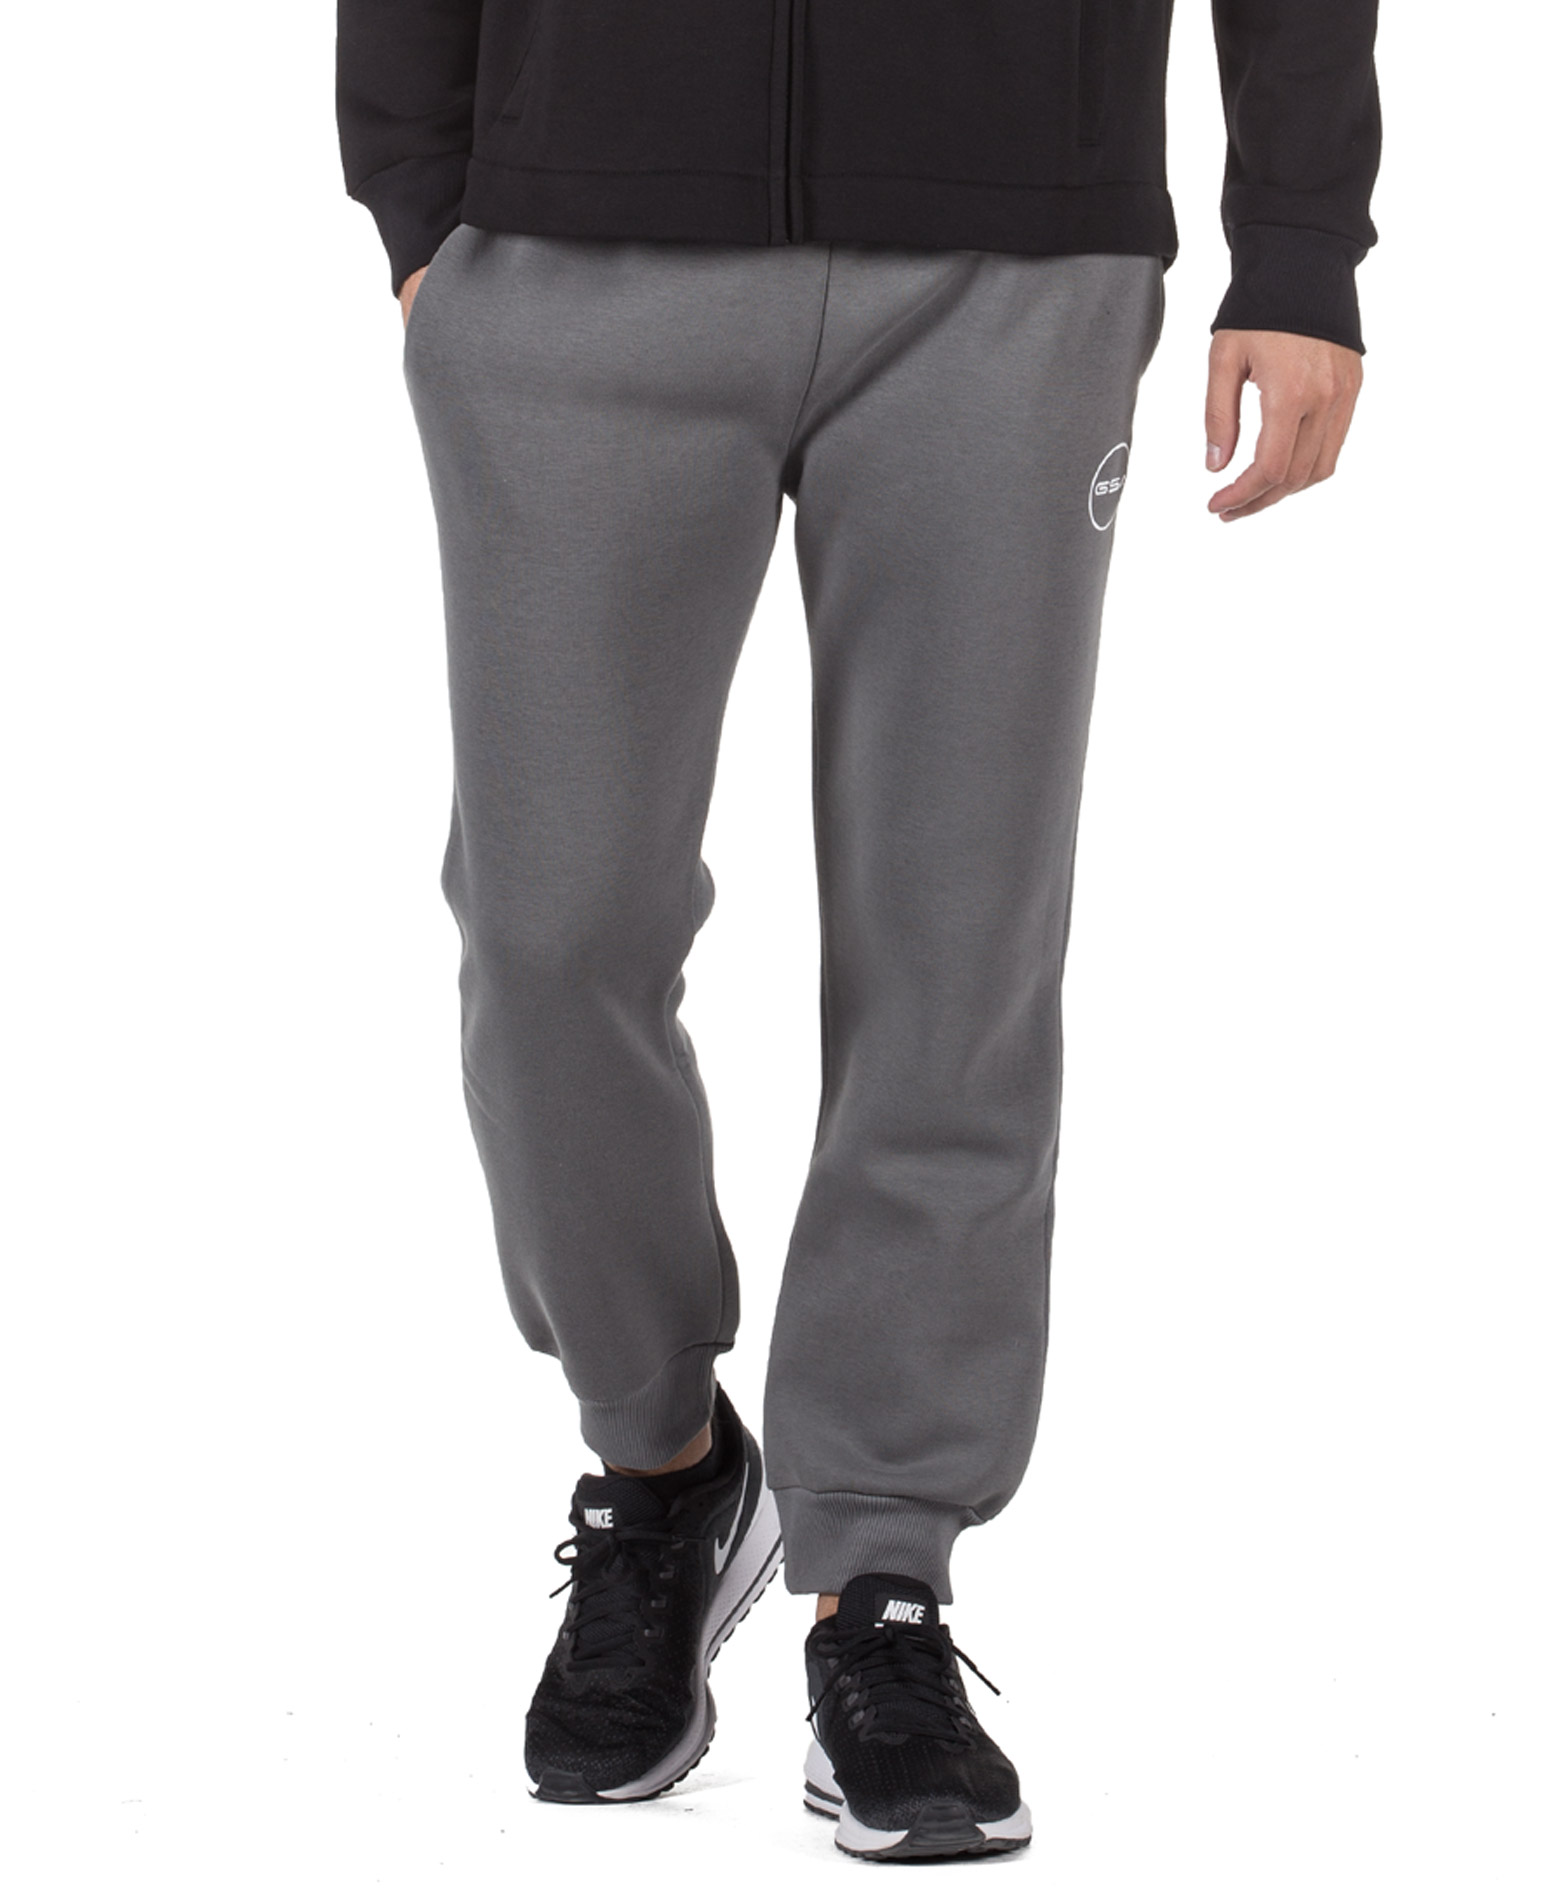 GSA SUPERCOTTON JOGGERS SWEATPANTS 17-17027-06 CHARCOAL Ανθρακί